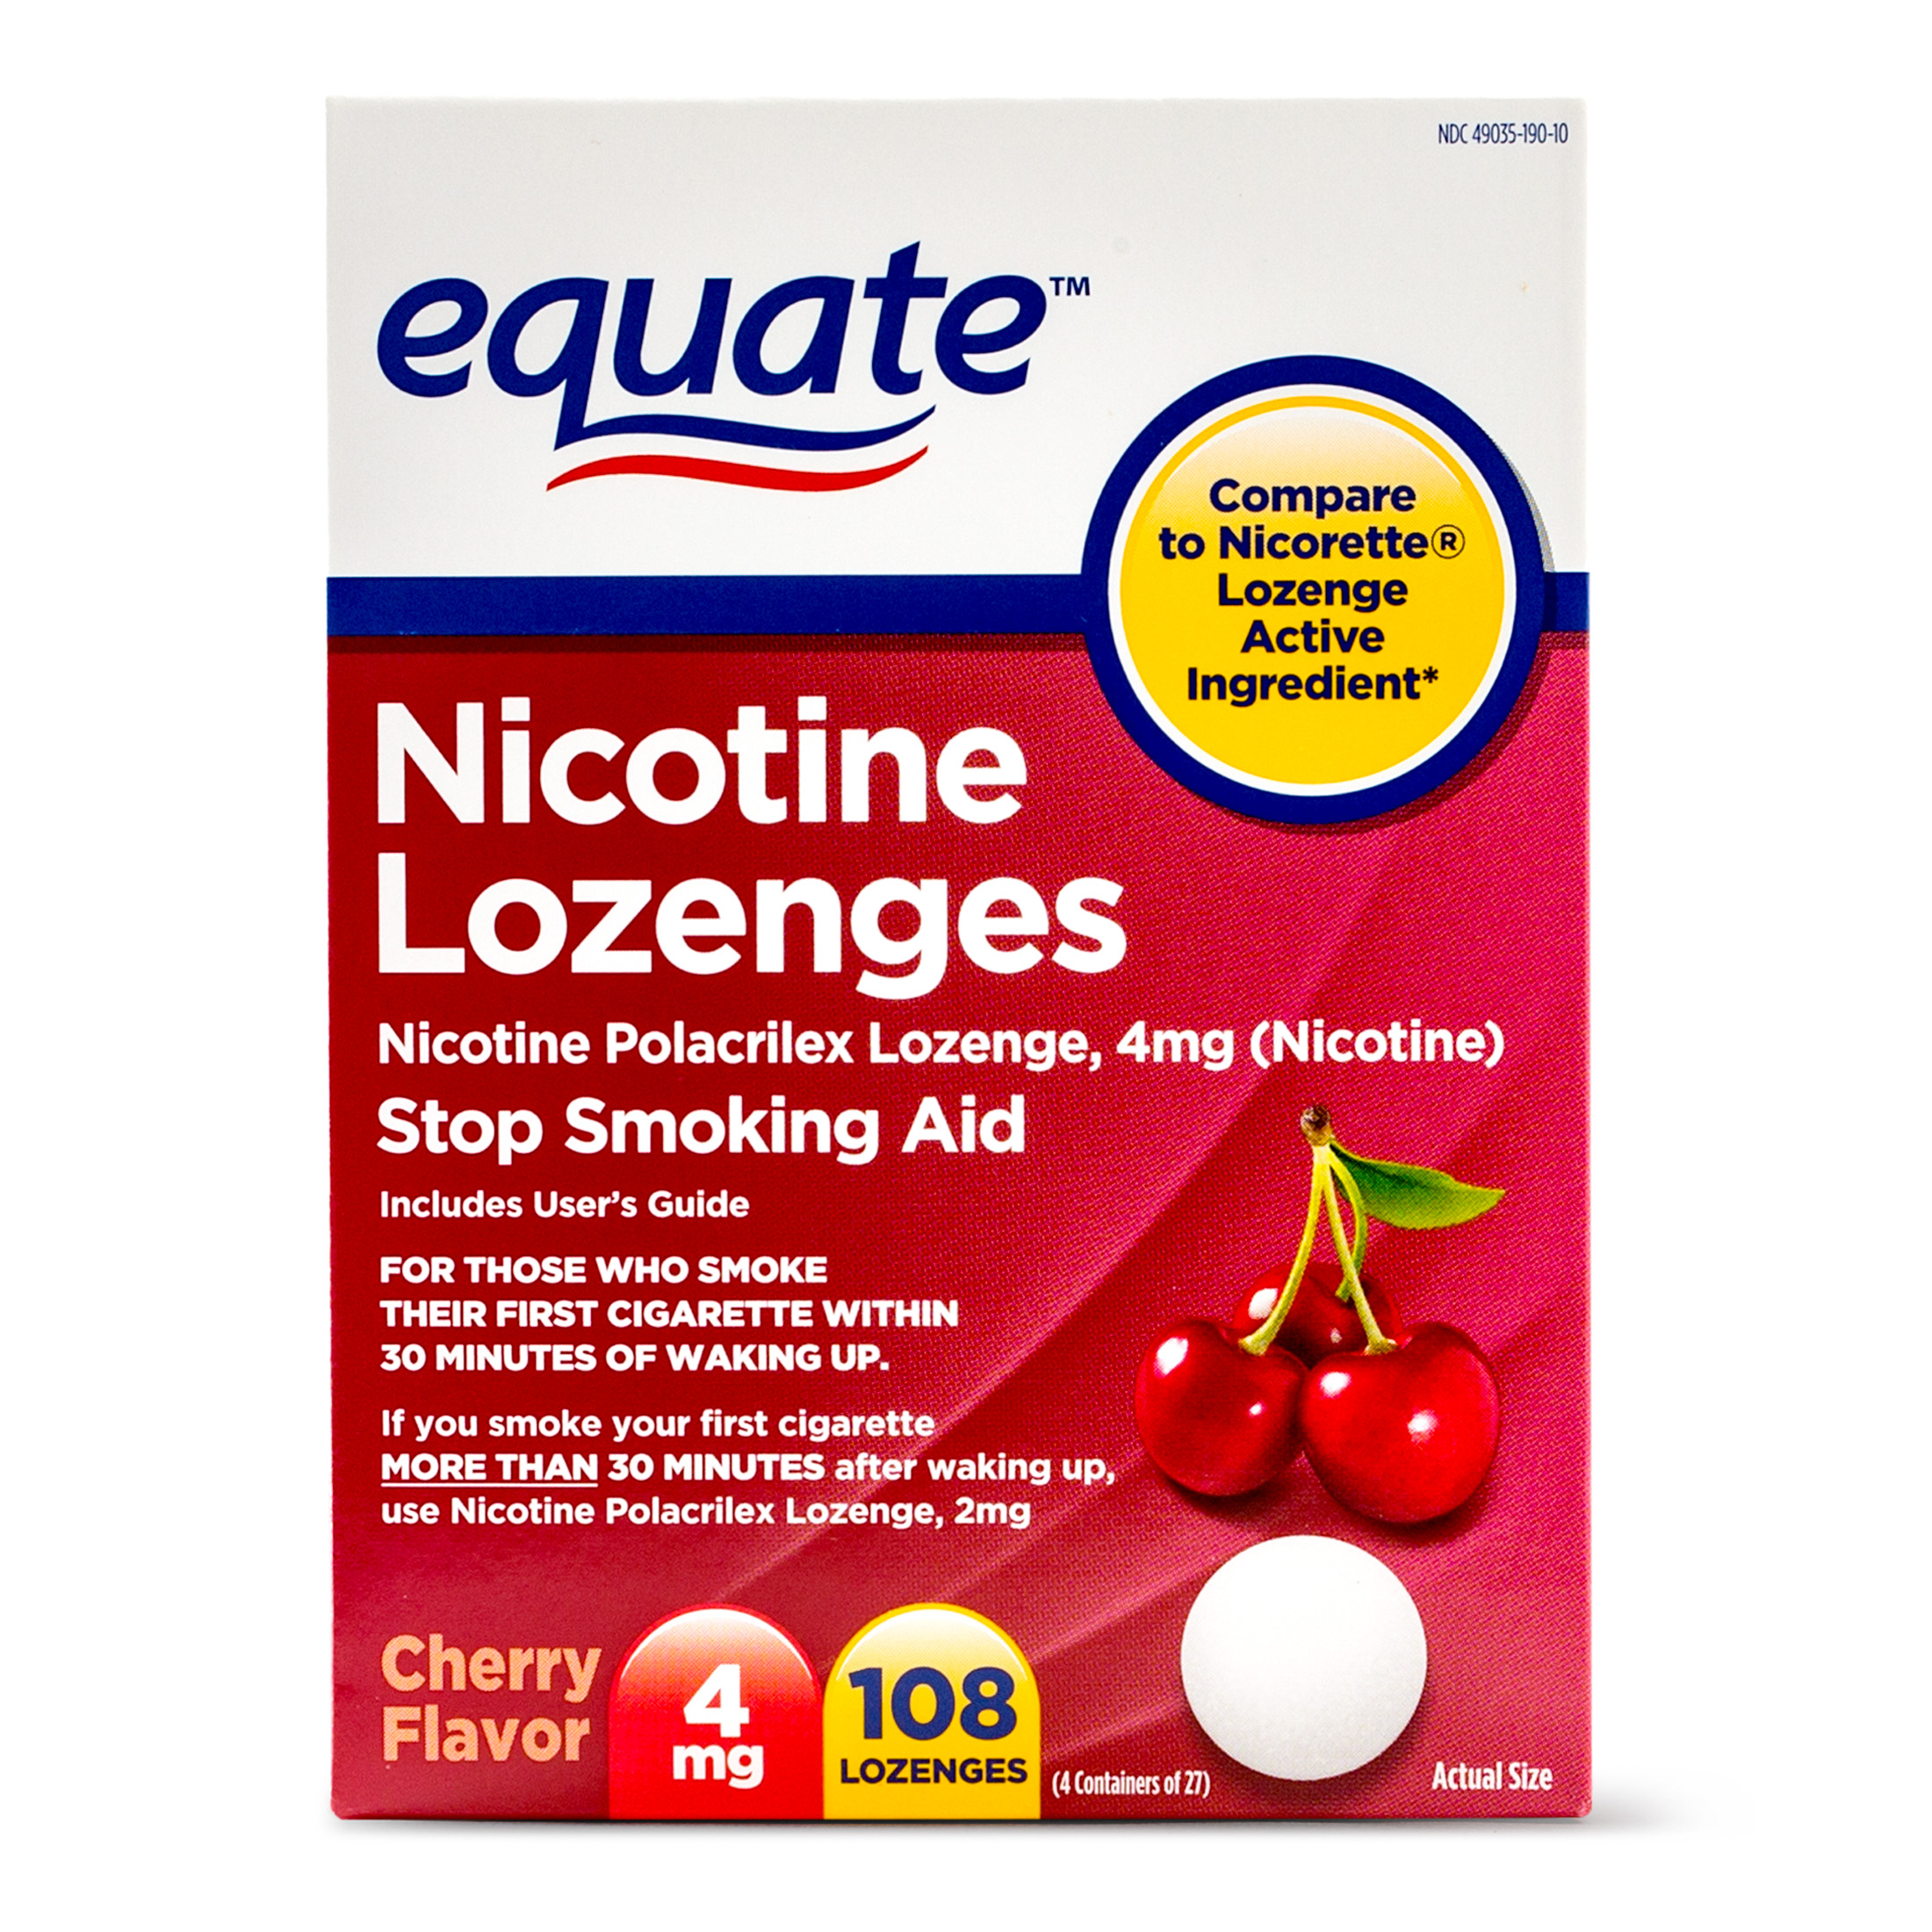 Equate Nicotine Lozenges Stop Smoking Aid Cherry Flavor, 4 mg, 108 Ct